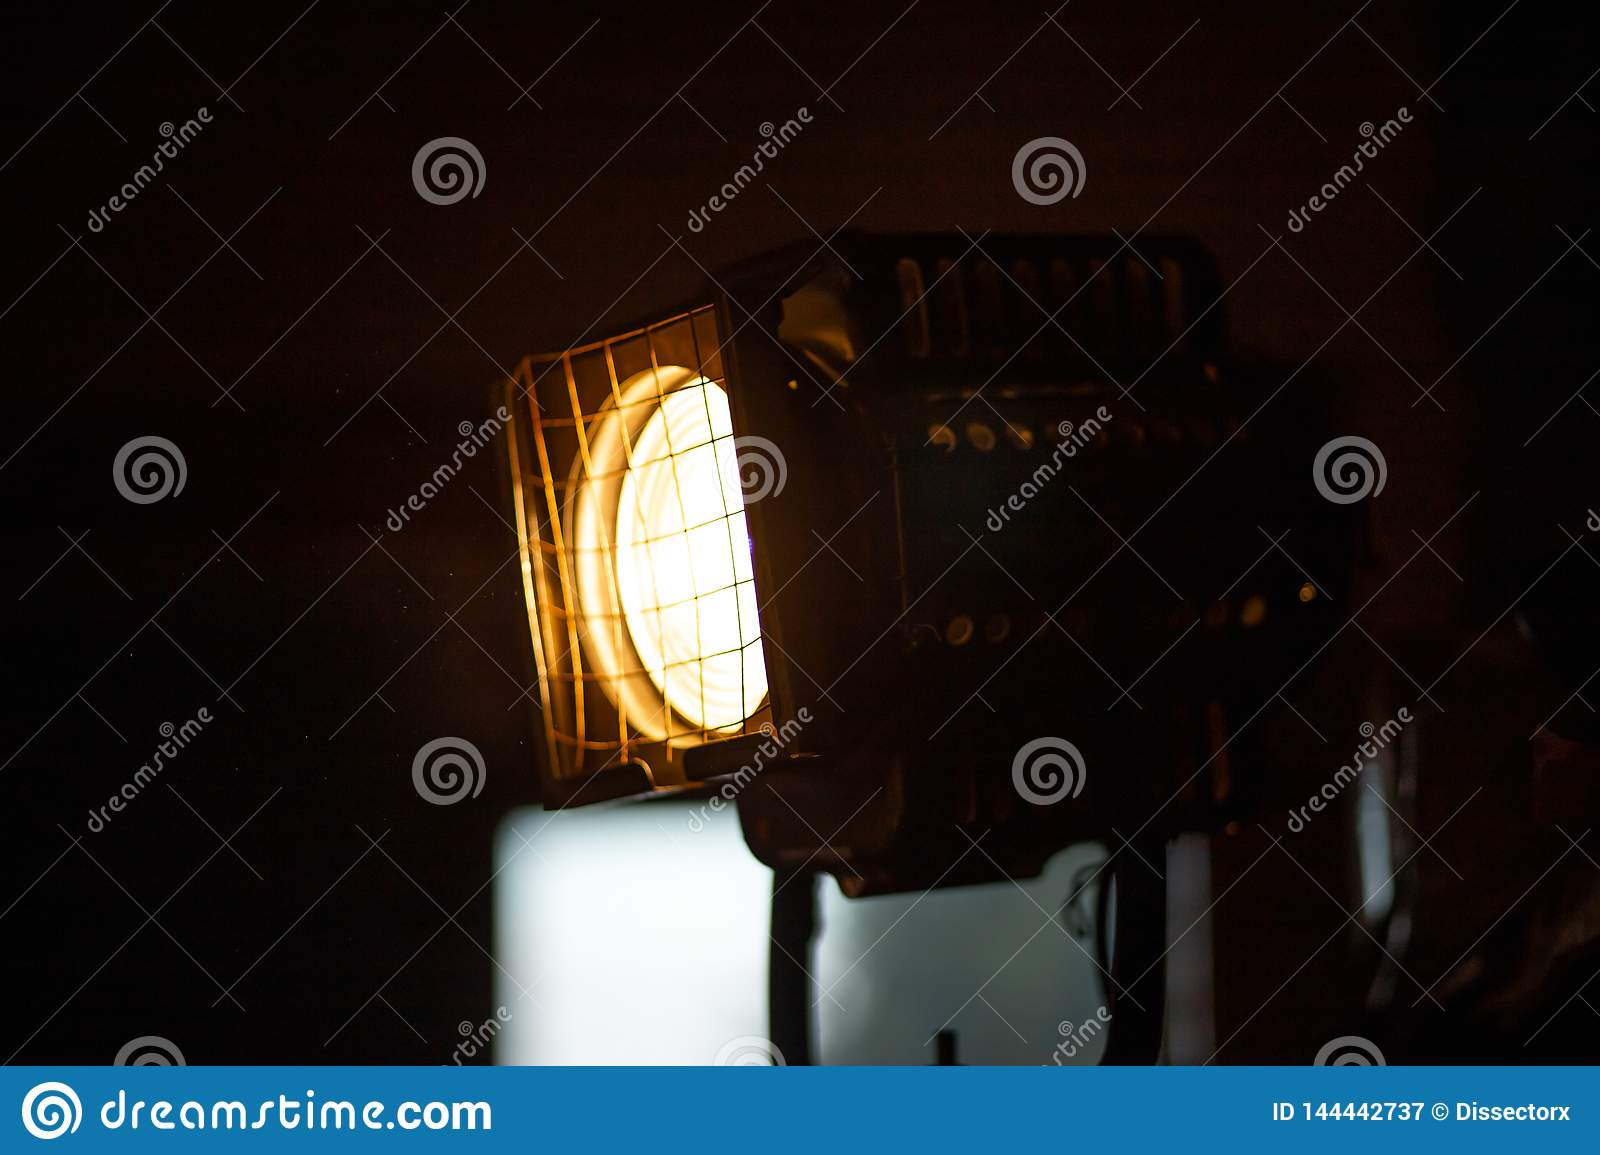 Huge stage projector lamp from a theatre with a warm yellow color